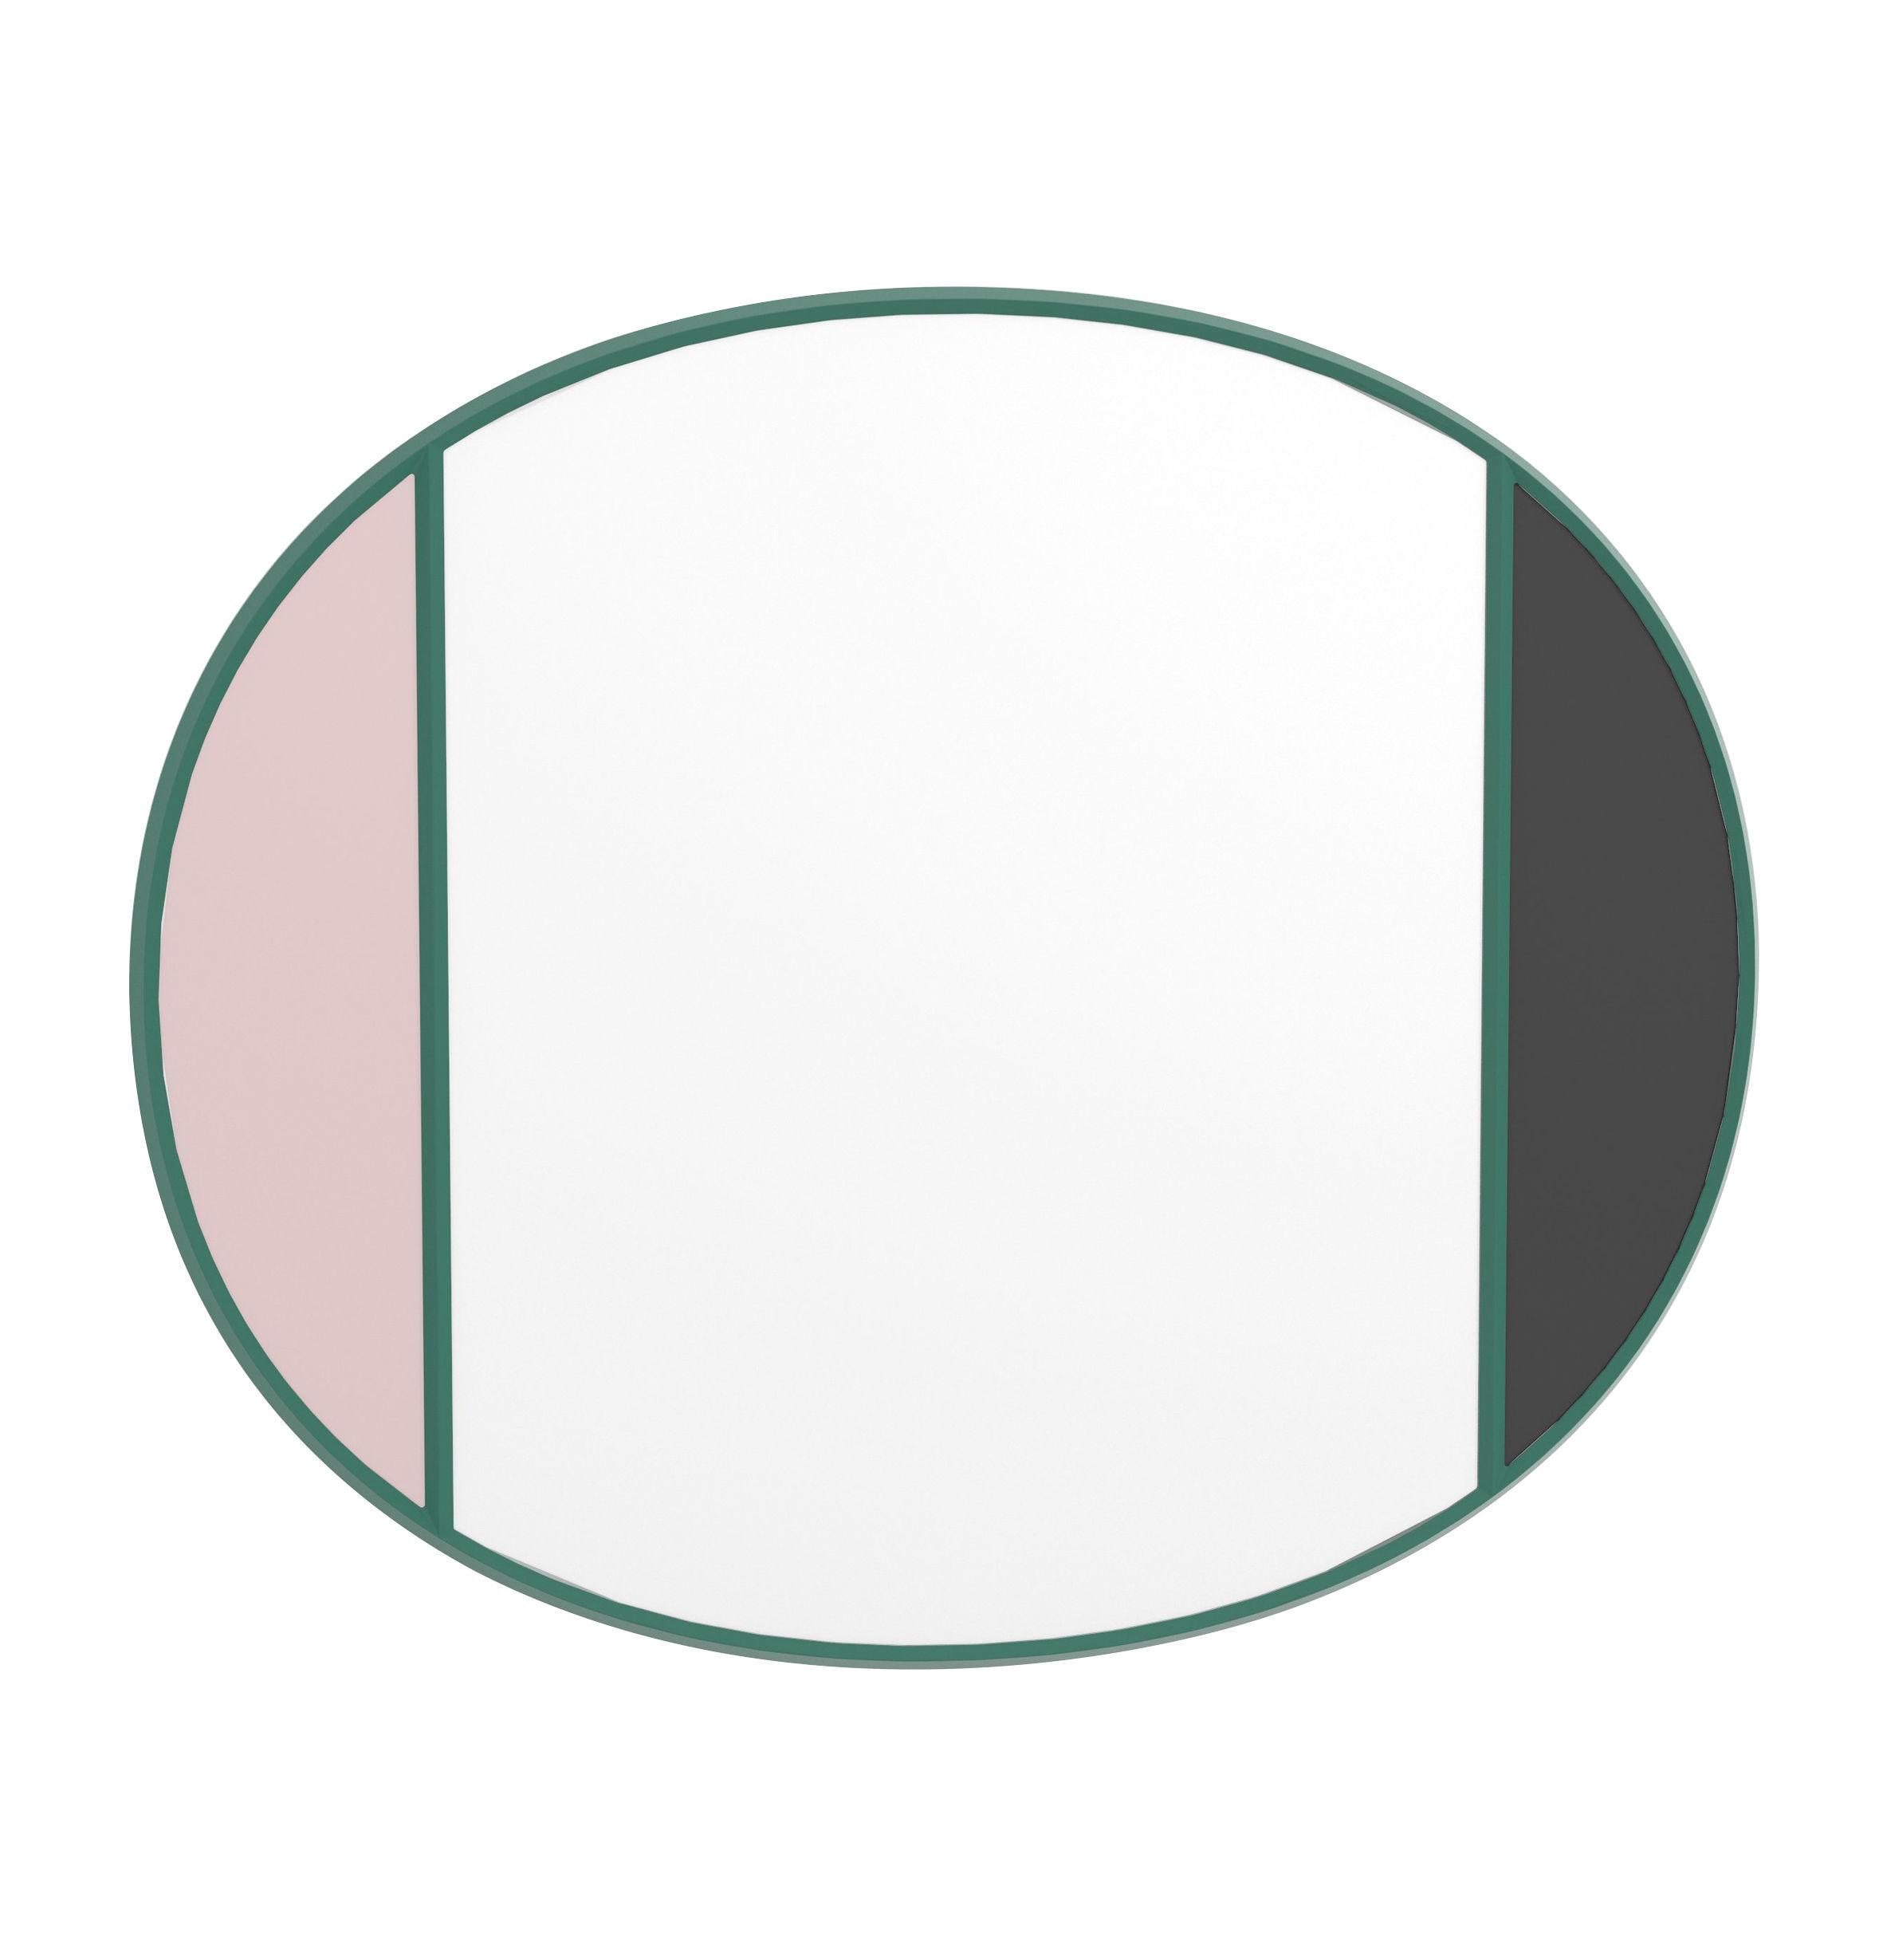 Decoration - Mirrors - Vitrail Wall mirror - / 50 x 60 cm by Magis - Green frame / Pink & grey - Glass, Rubber